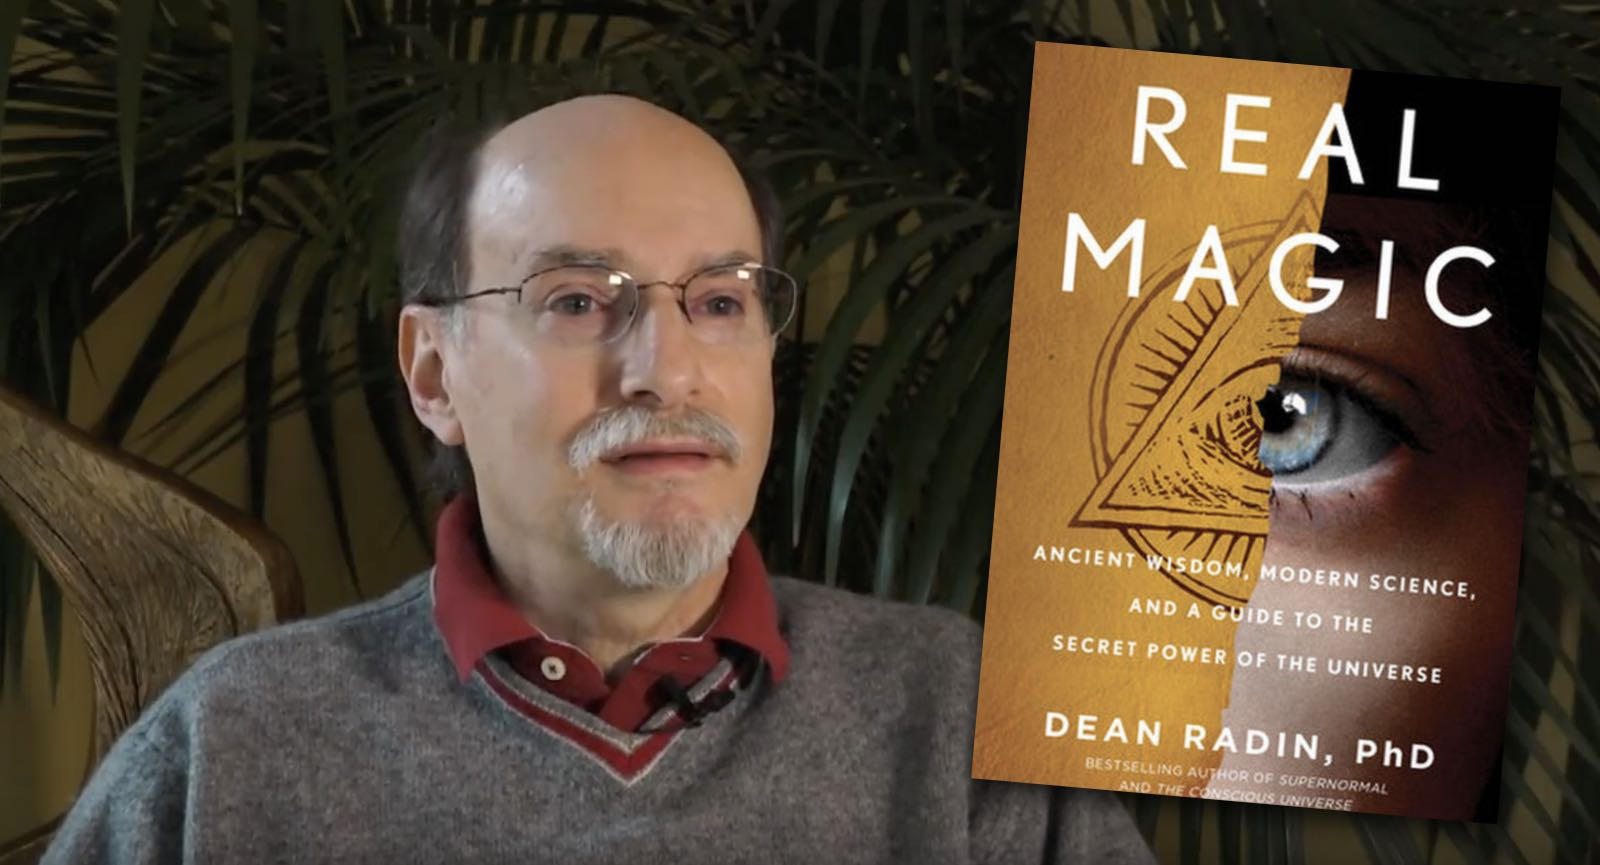 Dean Radin to release a new book on science and magic